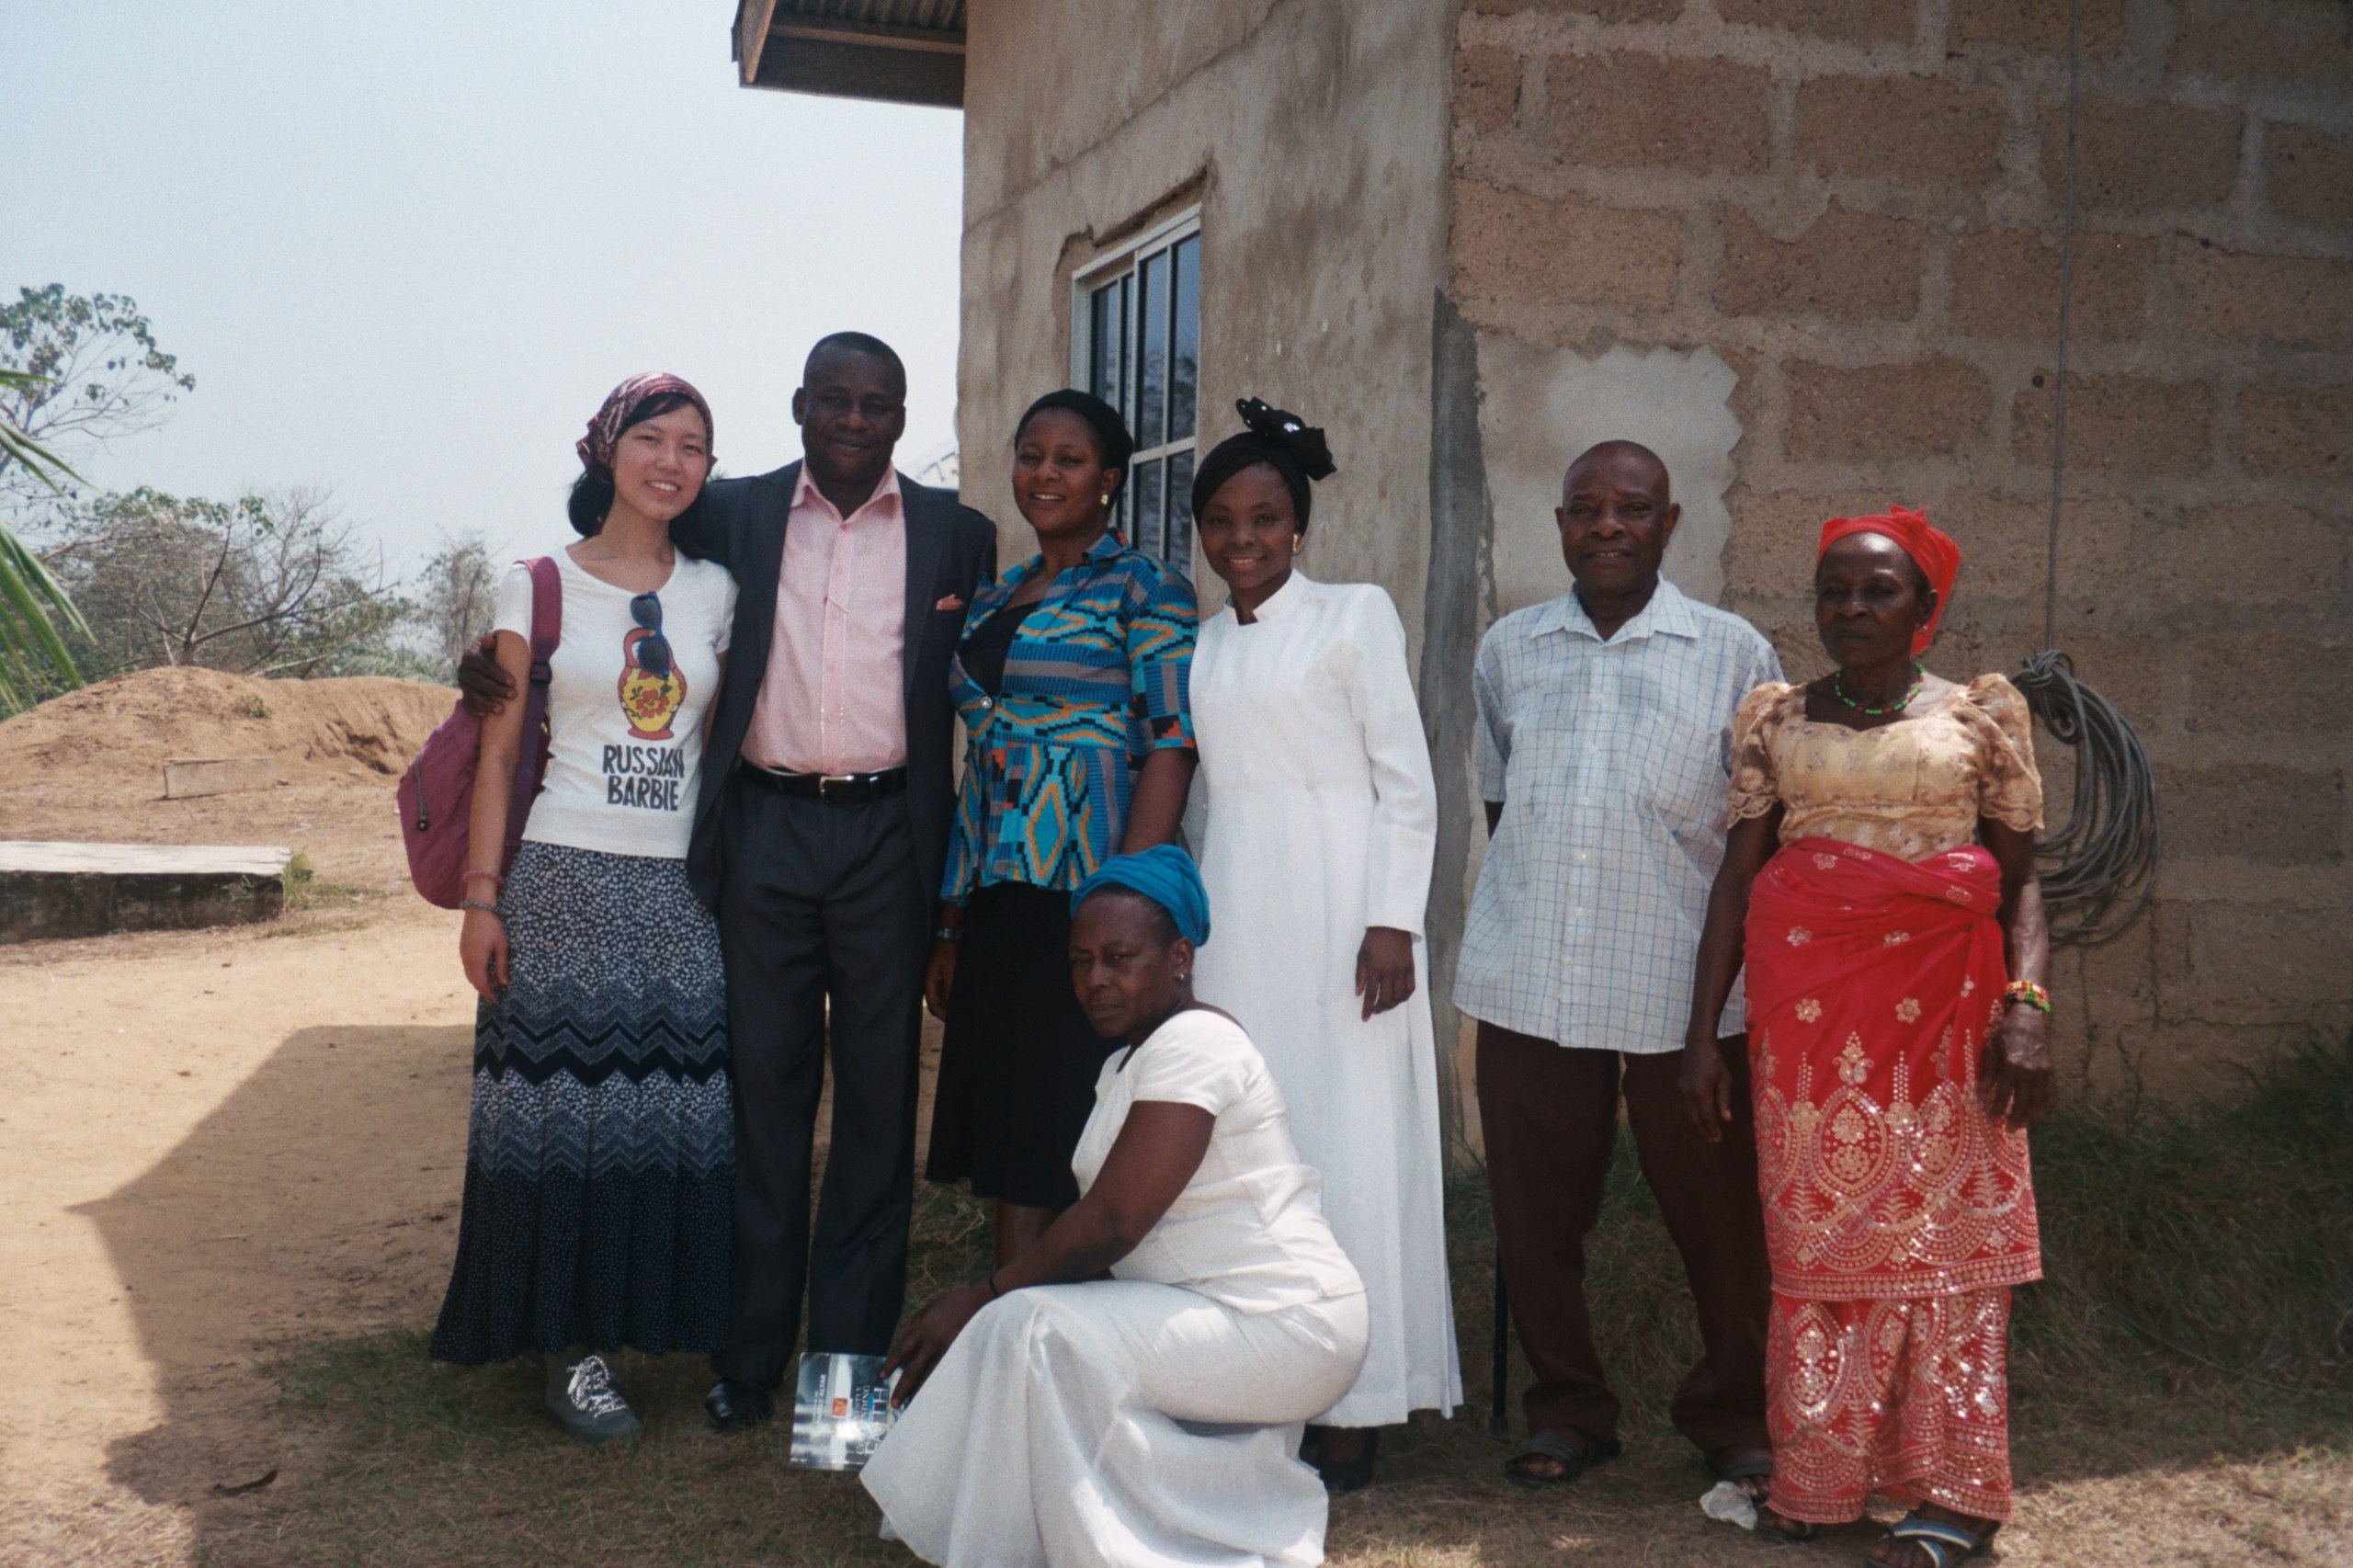 Research trip to Nigeria: The Voices of Africa